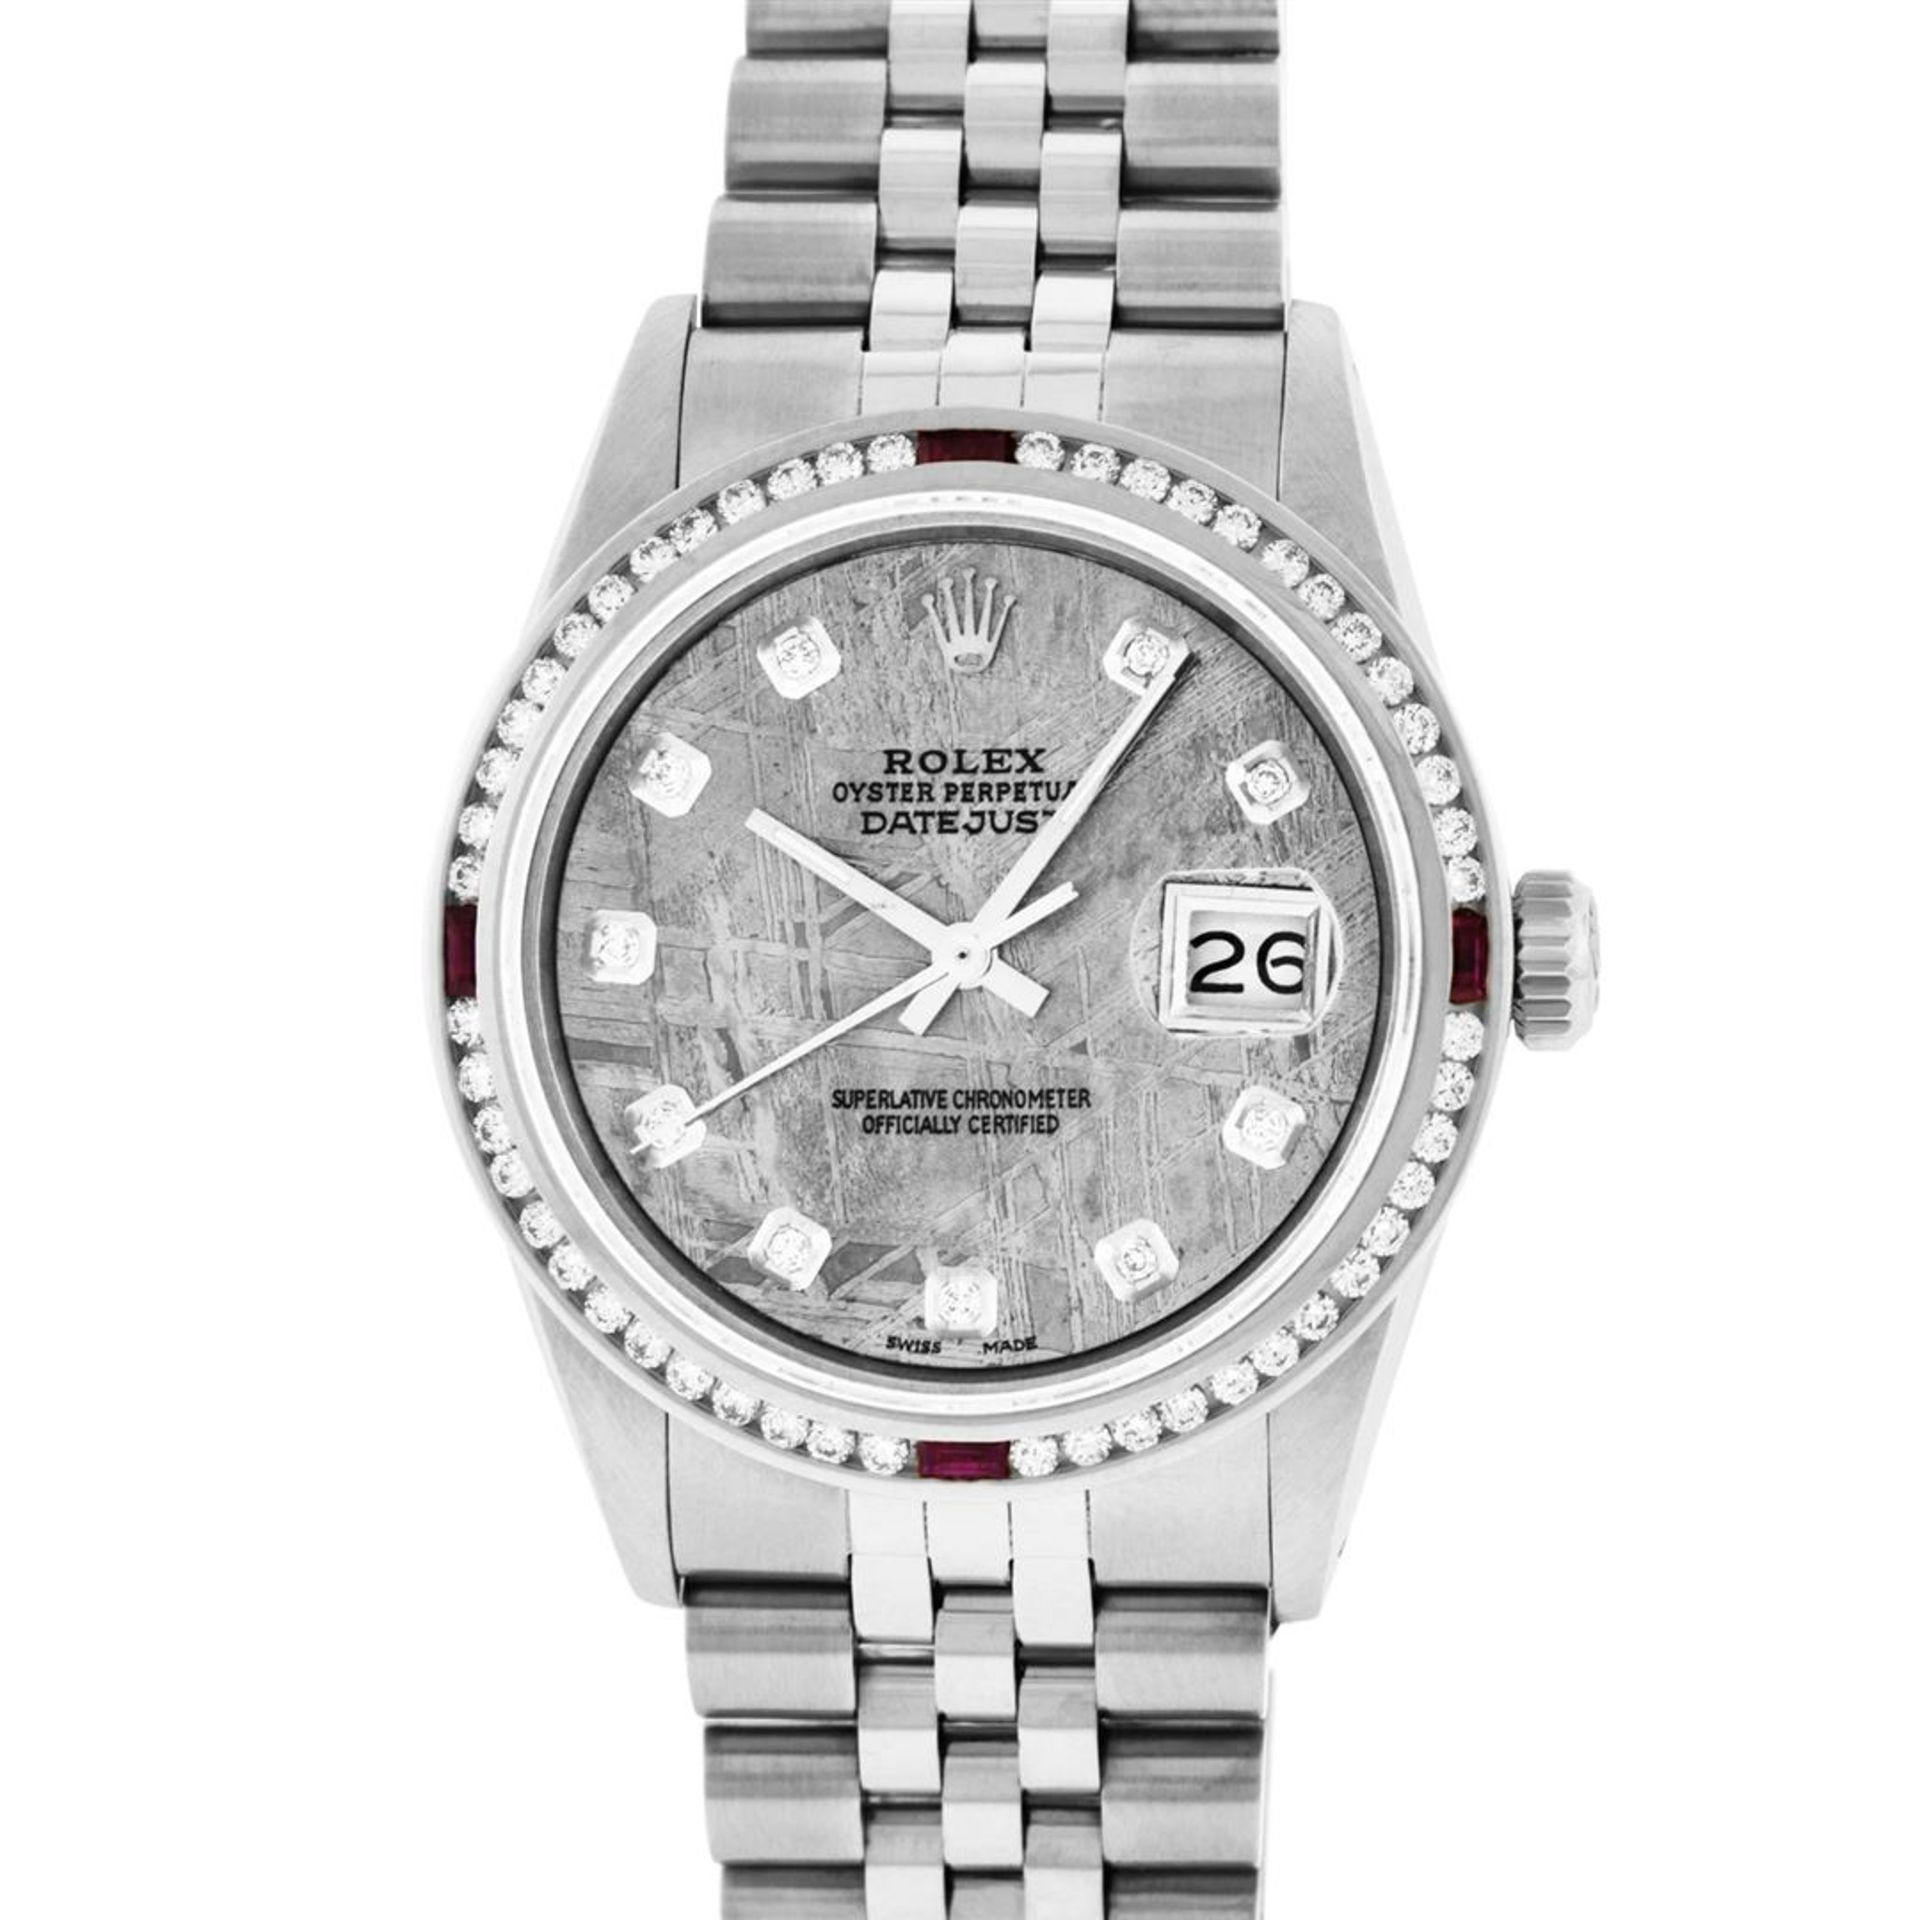 Rolex Mens SS Meteorite Diamond & Ruby Channel Set Diamond Datejust 36MM - Image 2 of 8